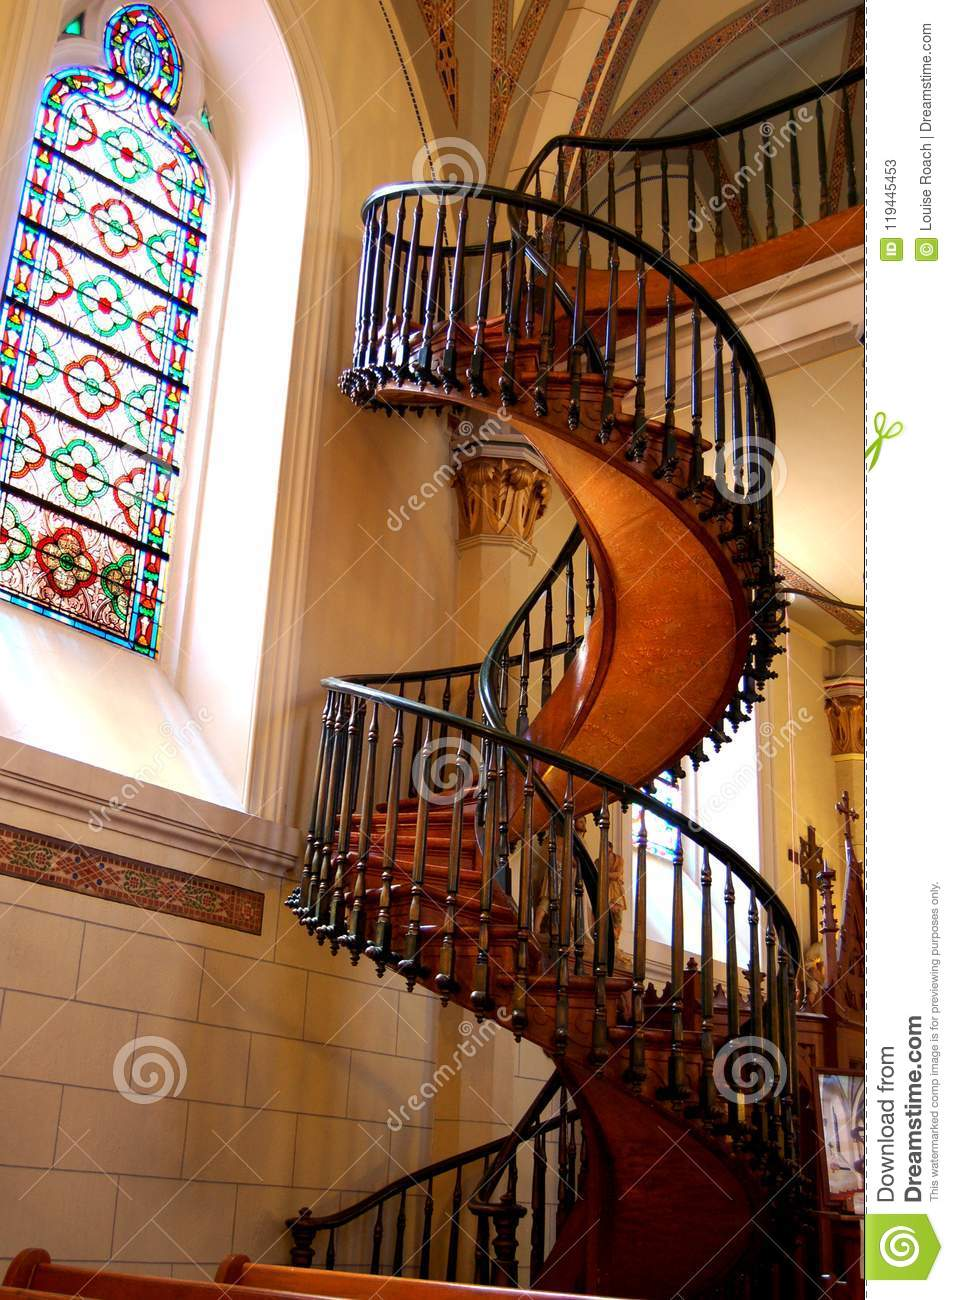 107 Loretto Chapel Staircase Photos Free Royalty Free Stock Photos From Dreamstime